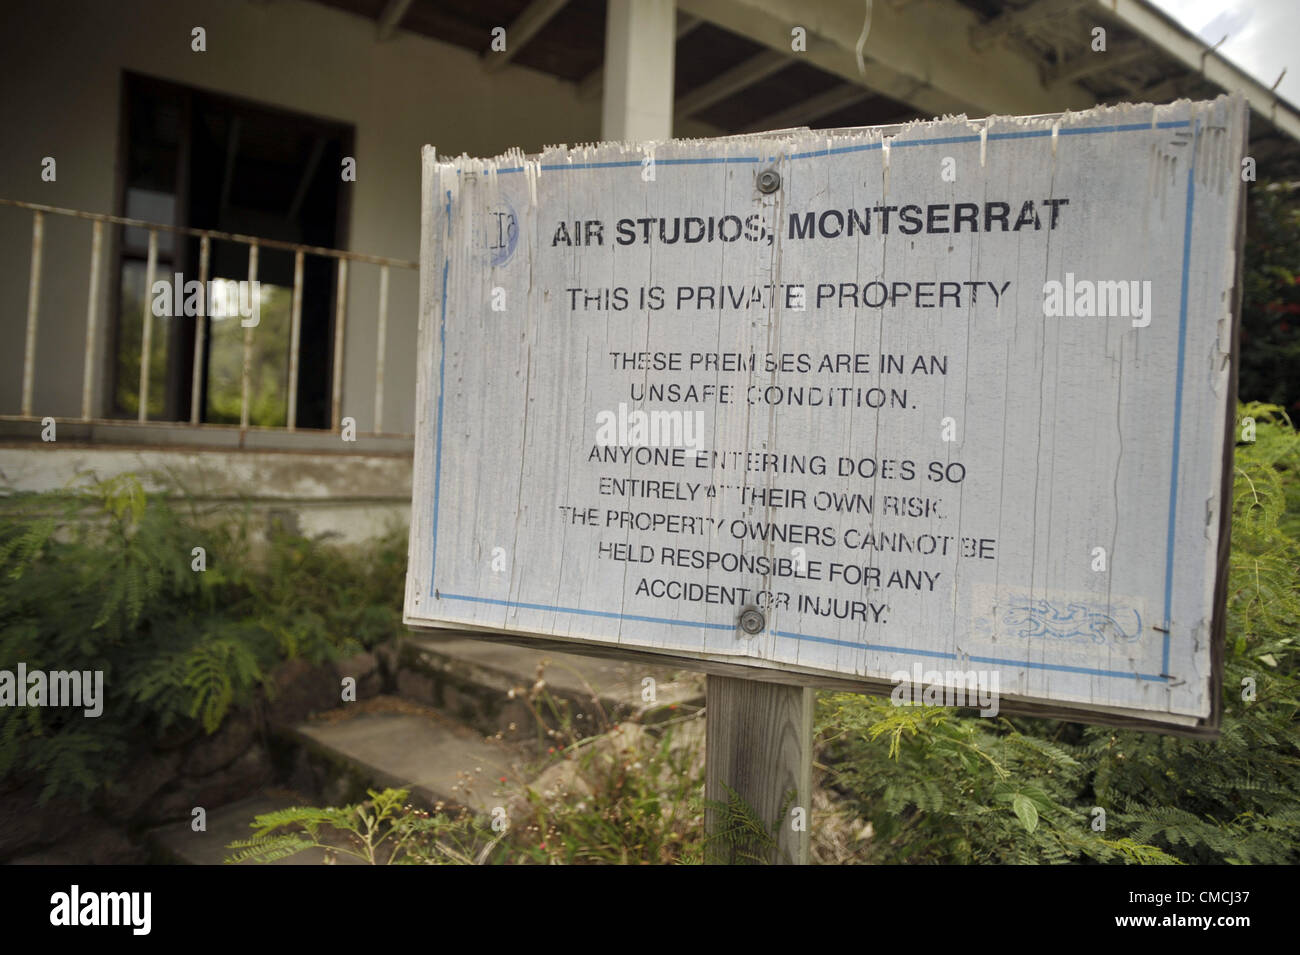 June 22, 2012 - Montserrat, UNITED KINGDOM - Determined to be in the exclusion zone, the abandoned AIR studios recording - Stock Image